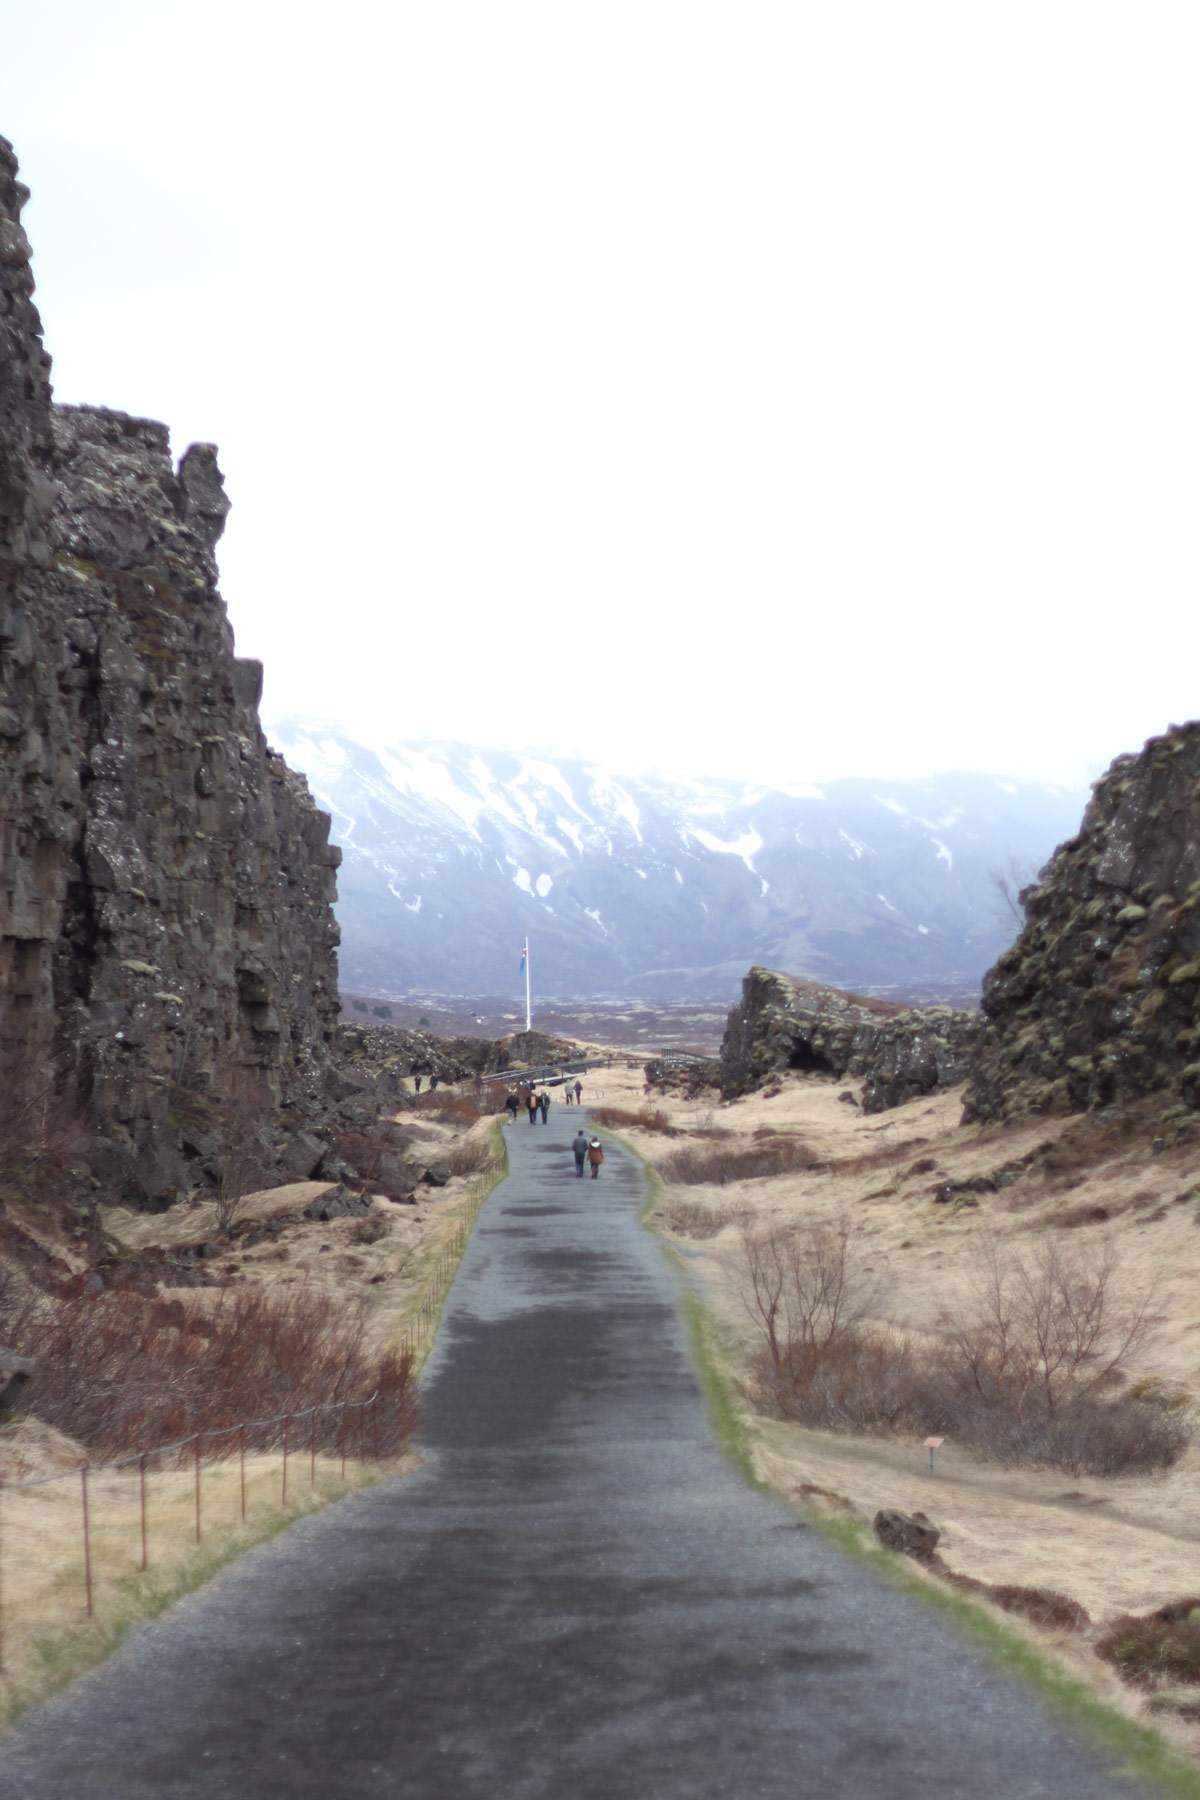 iceland-reykjavik-keflavik-review-photo-diary-travel-blog-golden-circle-tour-3